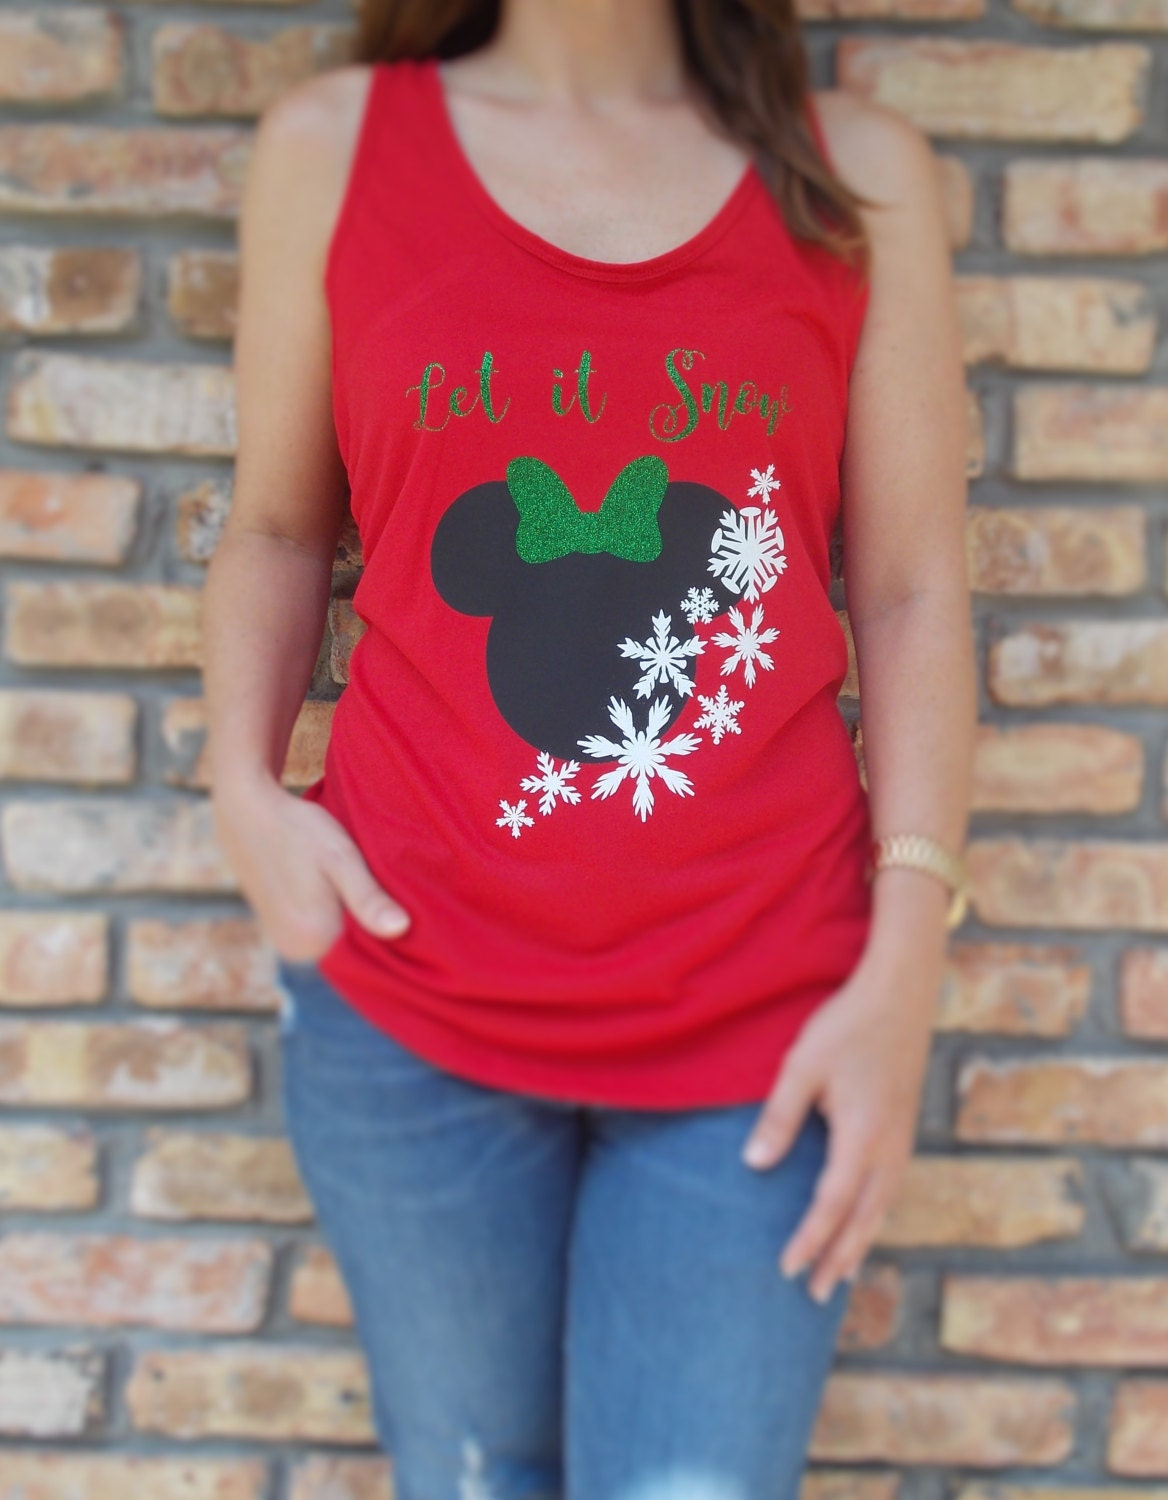 123 teach me tank game - Disney Inspired Minnie Mouse Christmas Tank For Adults Kids Disney Christmas Shirt Disney Let It Snow Minnie Mouse Christmas